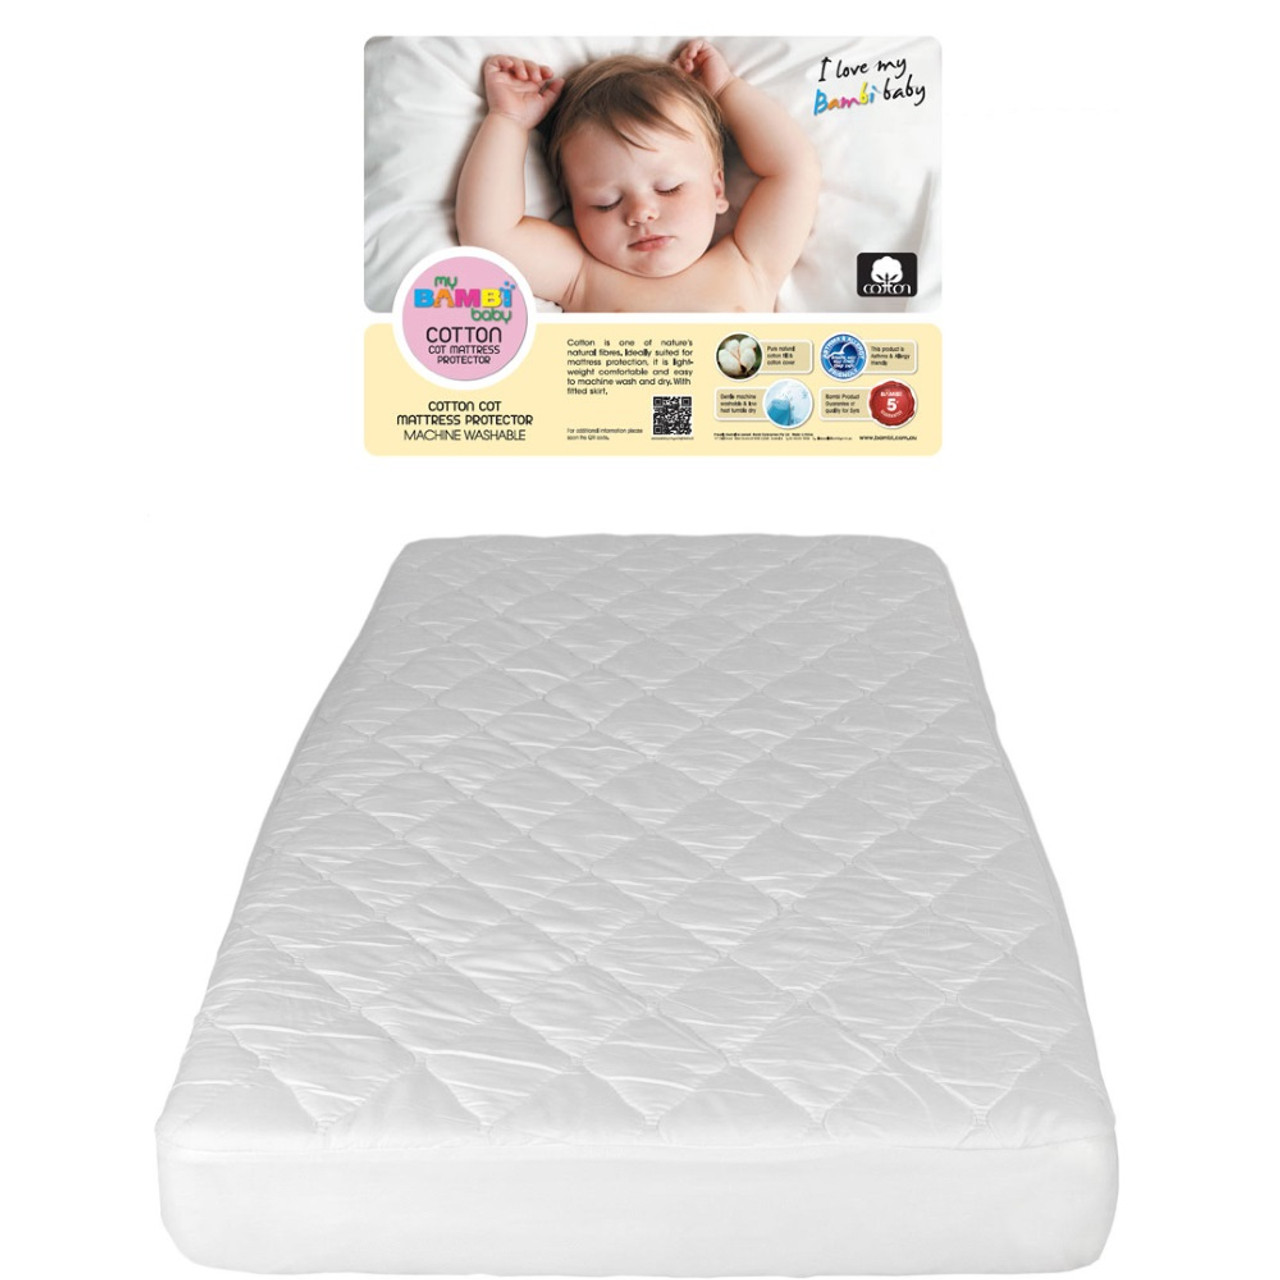 Mattress Cot Bambi Cotton Cot Mattress Protector